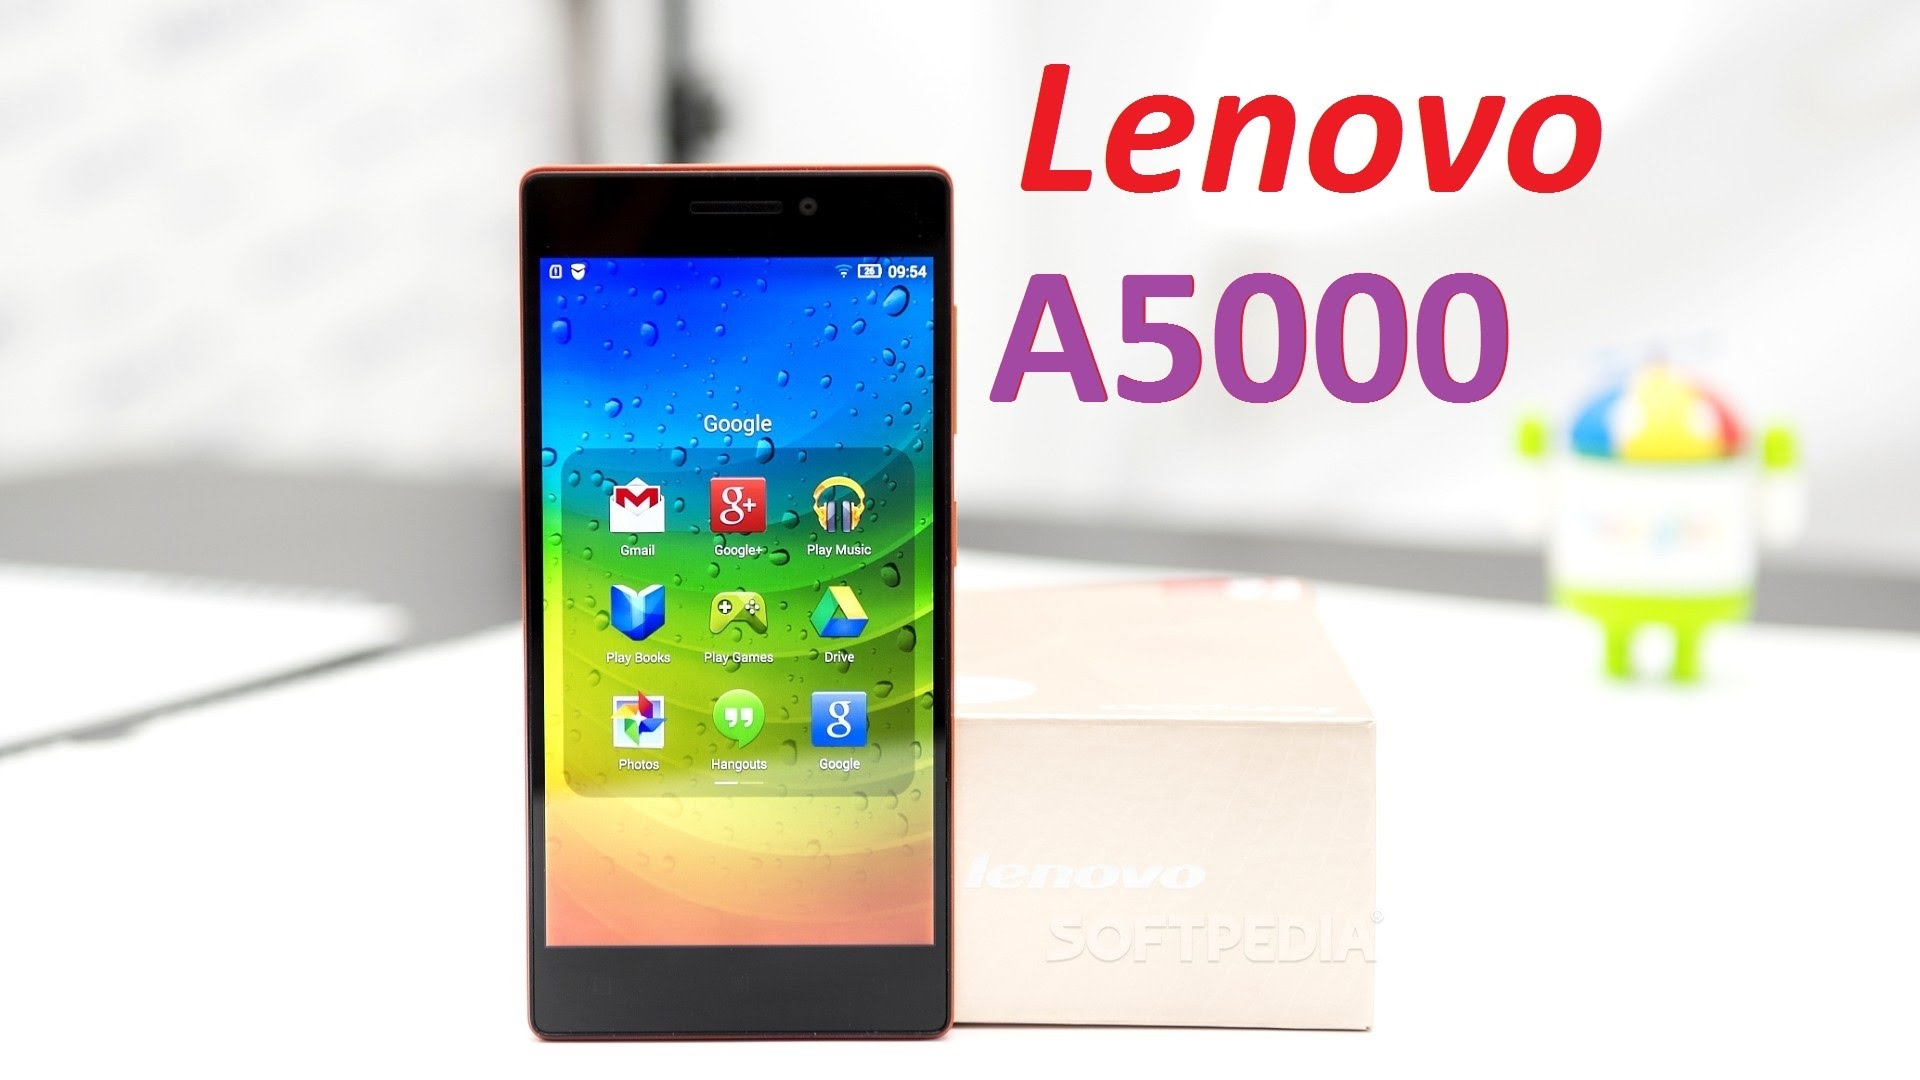 Phone Best Low Budget Android Phone best low budget android phones you can get in nigeria lenovo a5000